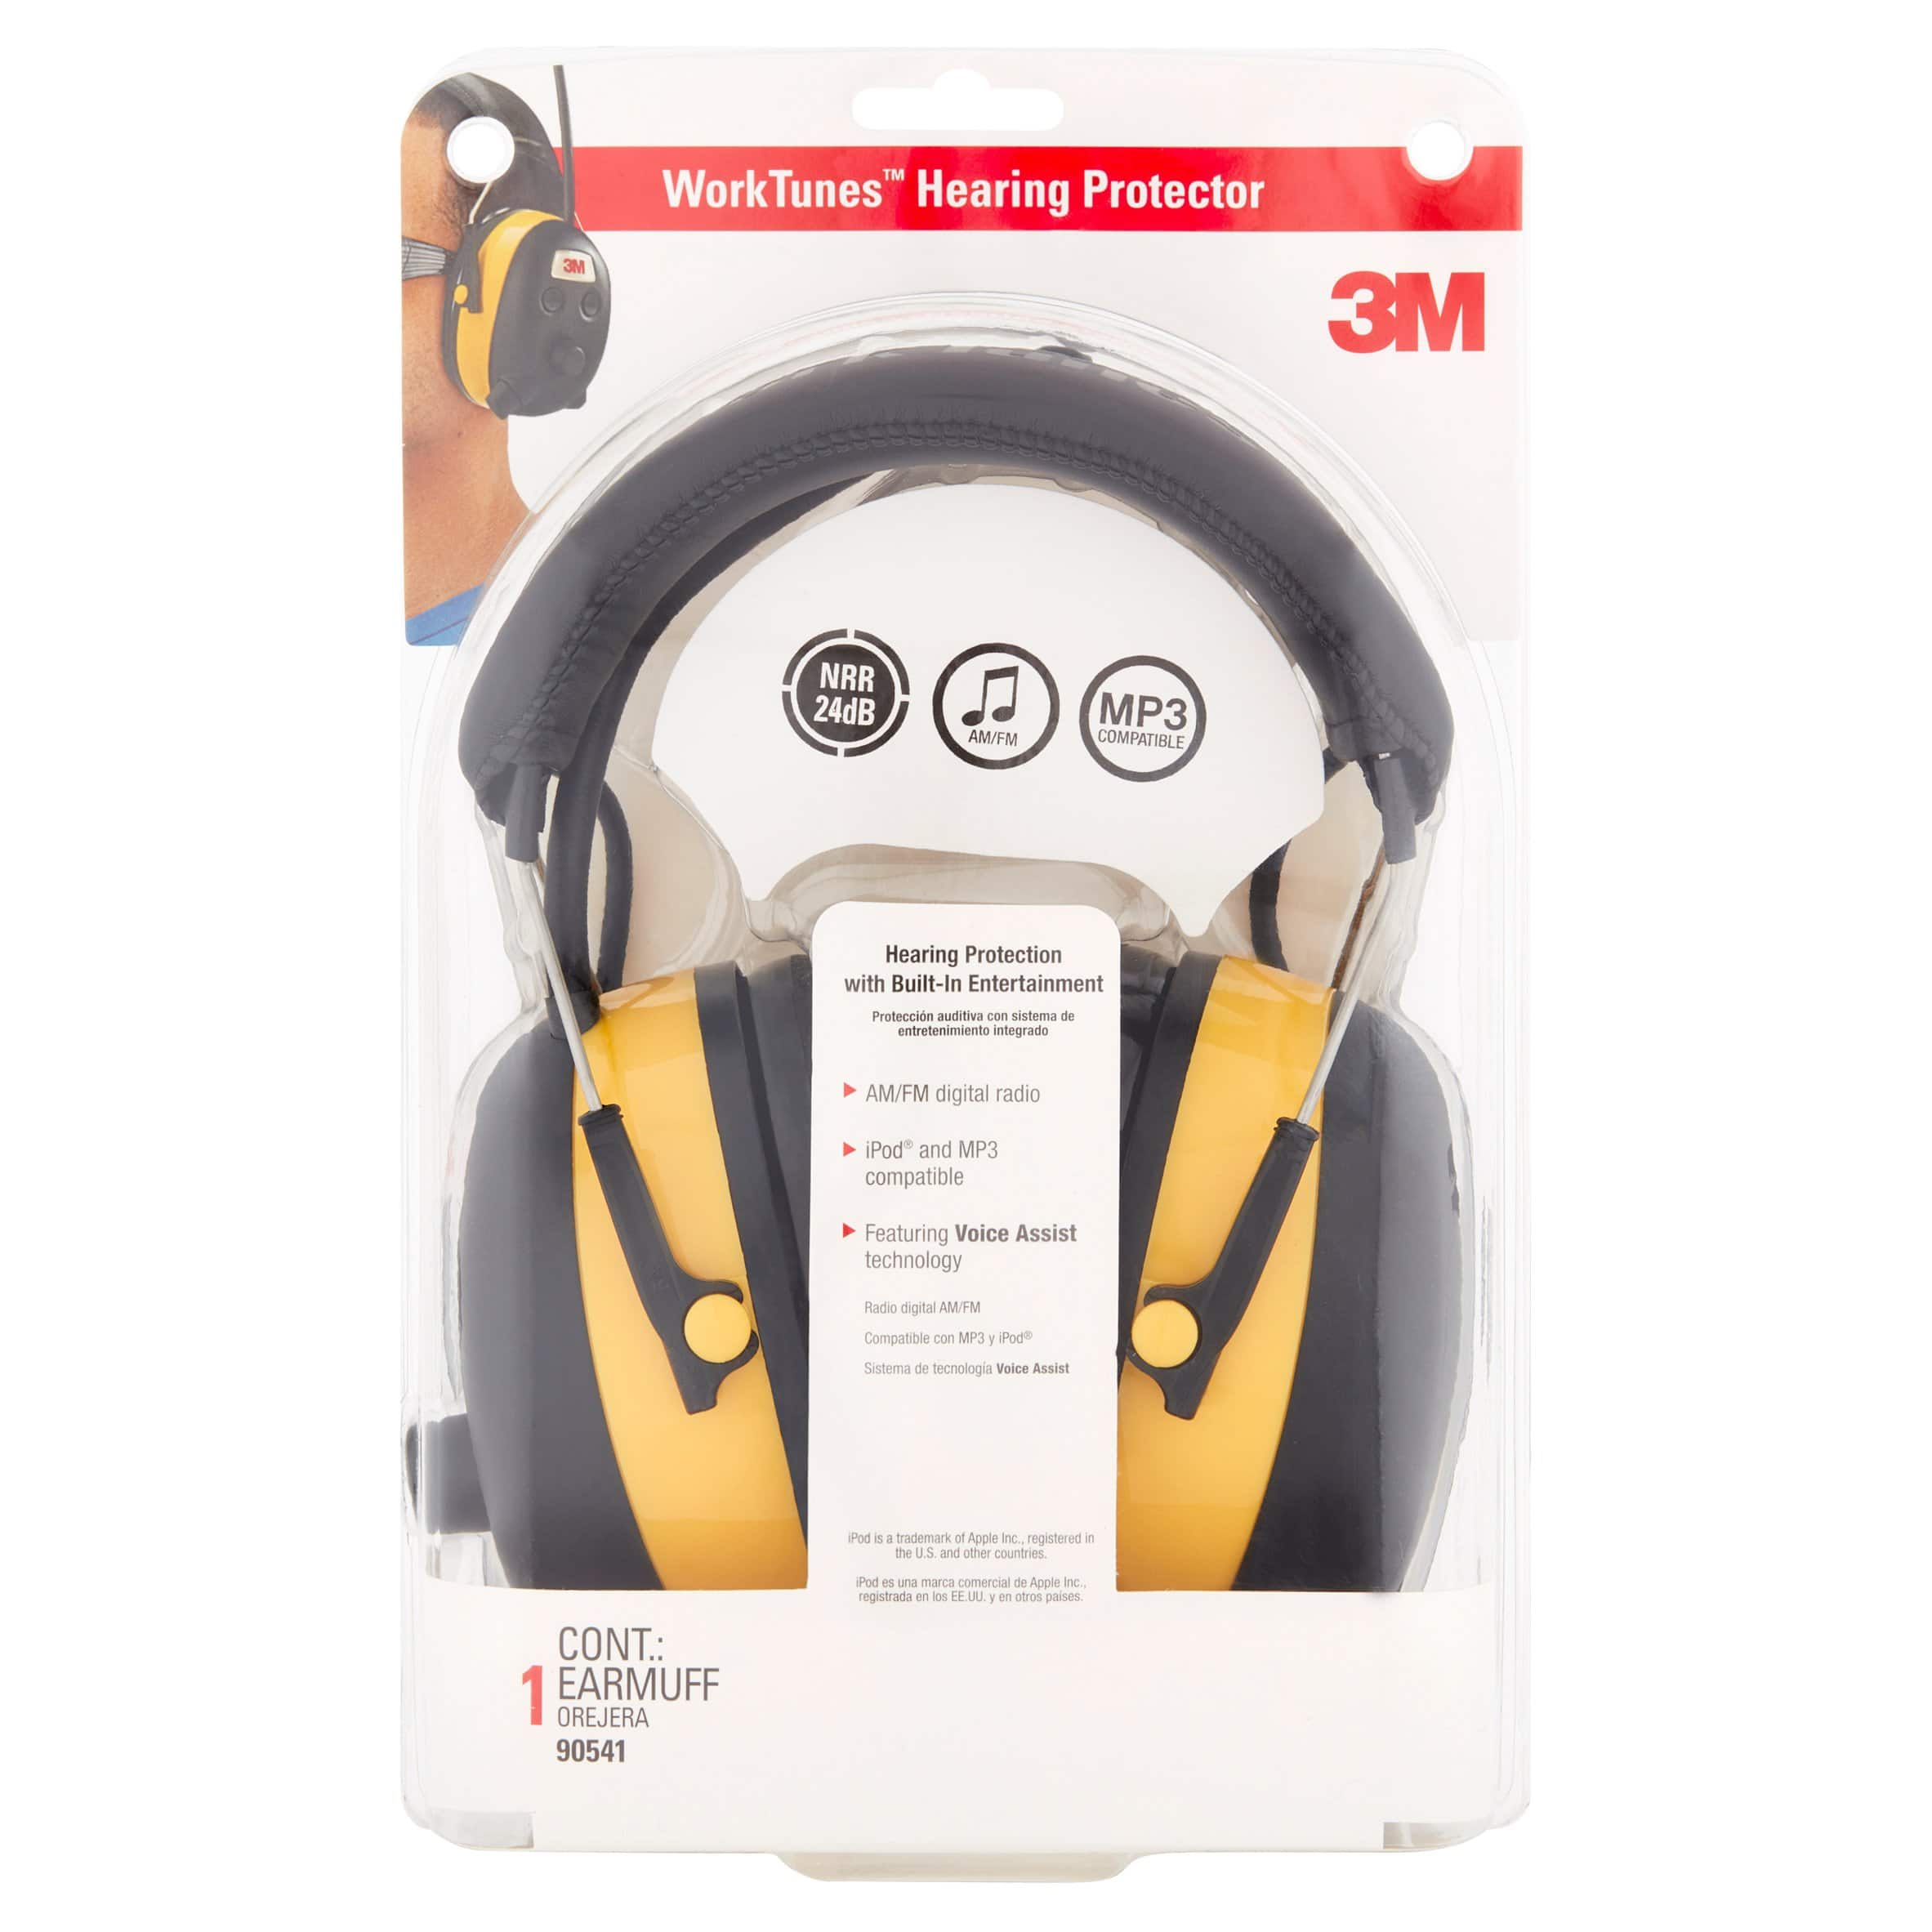 Walmart B&M clearance: 3M Worktunes hearing protector as low as $5 YMMV